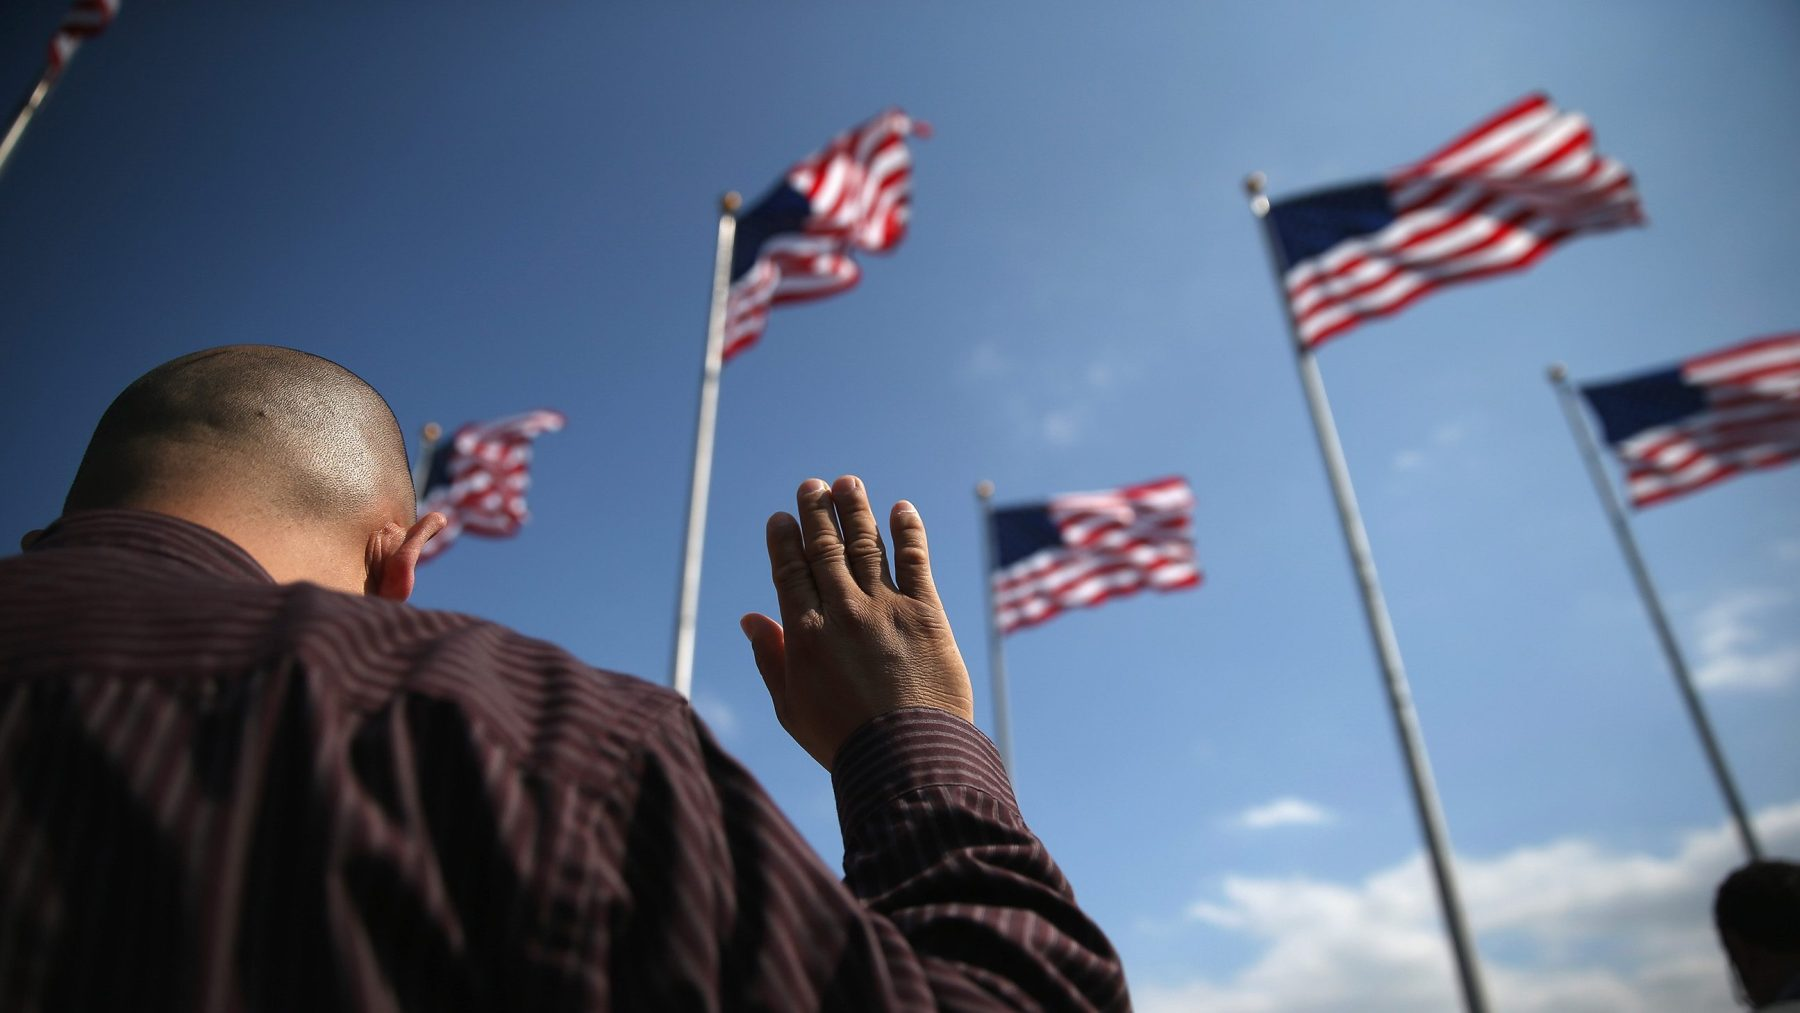 Immigrants take the oath of citizenship to the United States during a naturalization ceremony at Liberty State Park on September 19, 2014 in Jersey City, New Jersey. (John Moore/Getty Images)